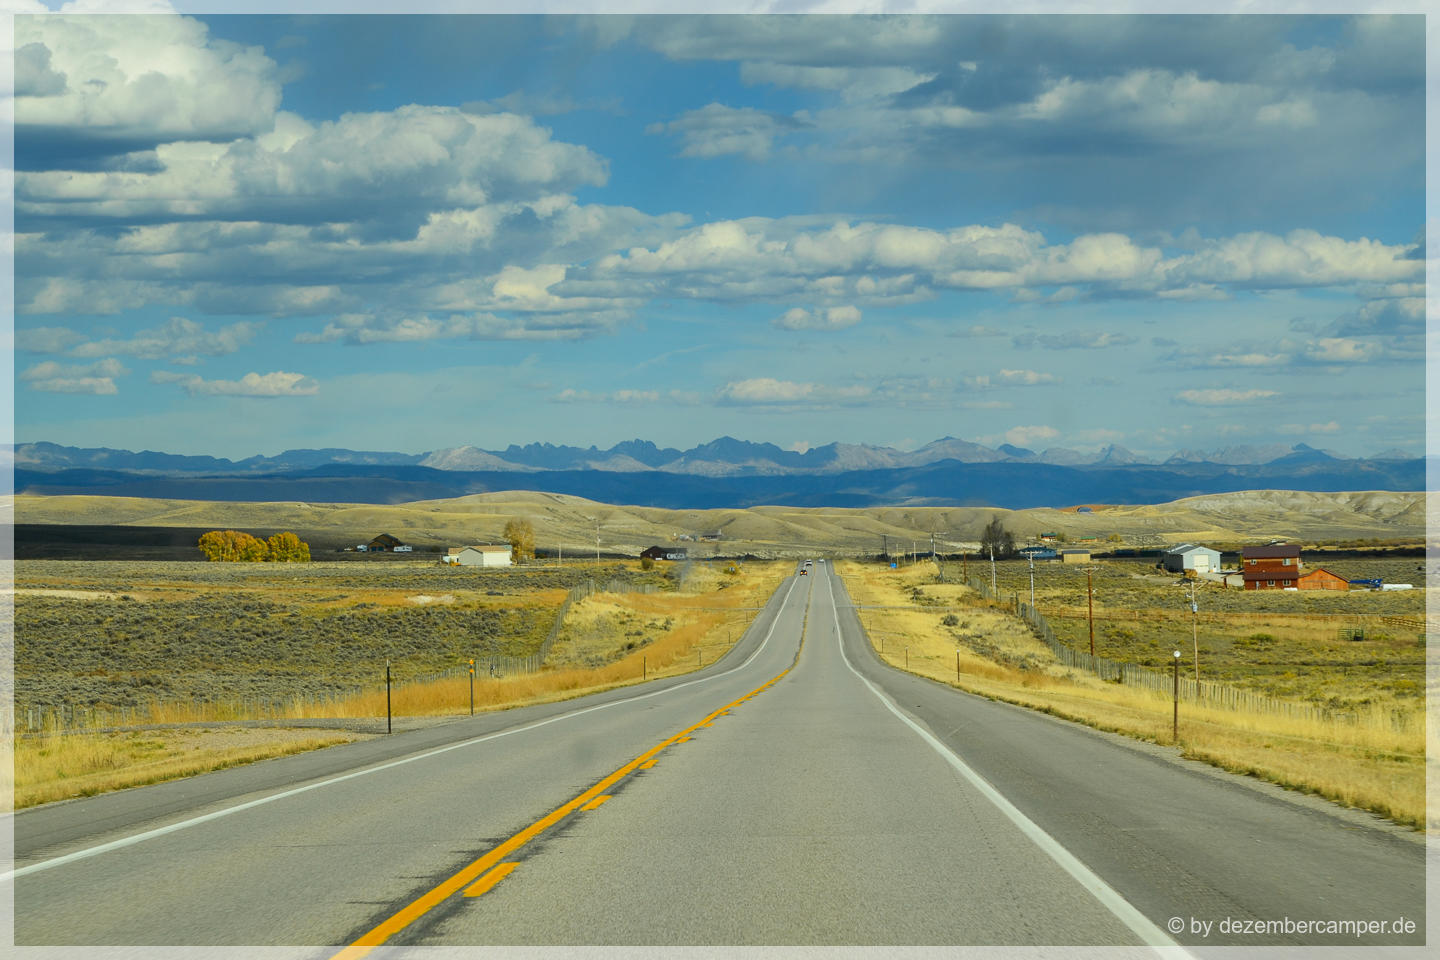 Wyoming - On the road